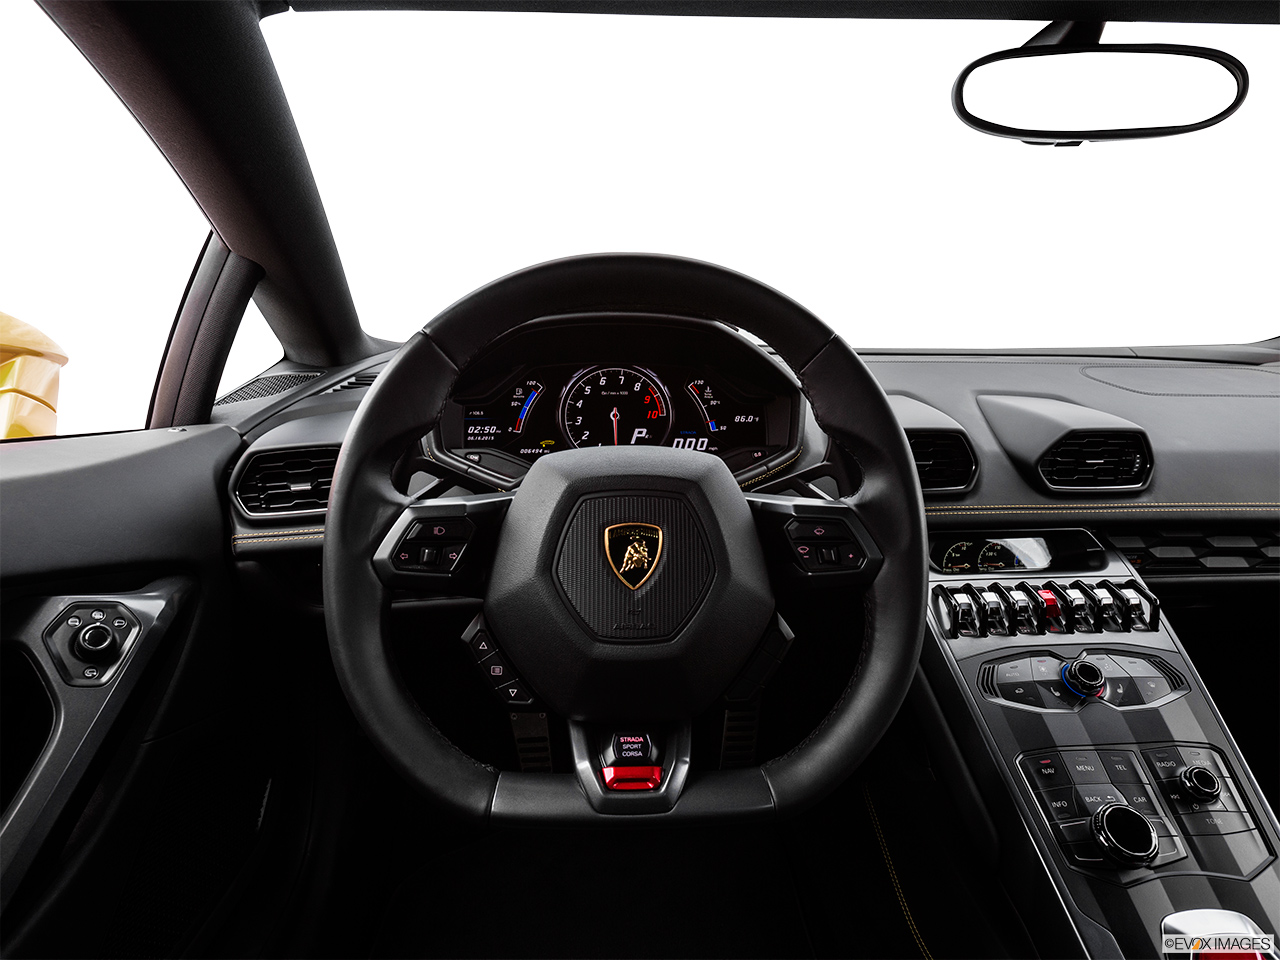 2015 Lamborghini Huracan LP 610-4 Steering wheel/Center Console.